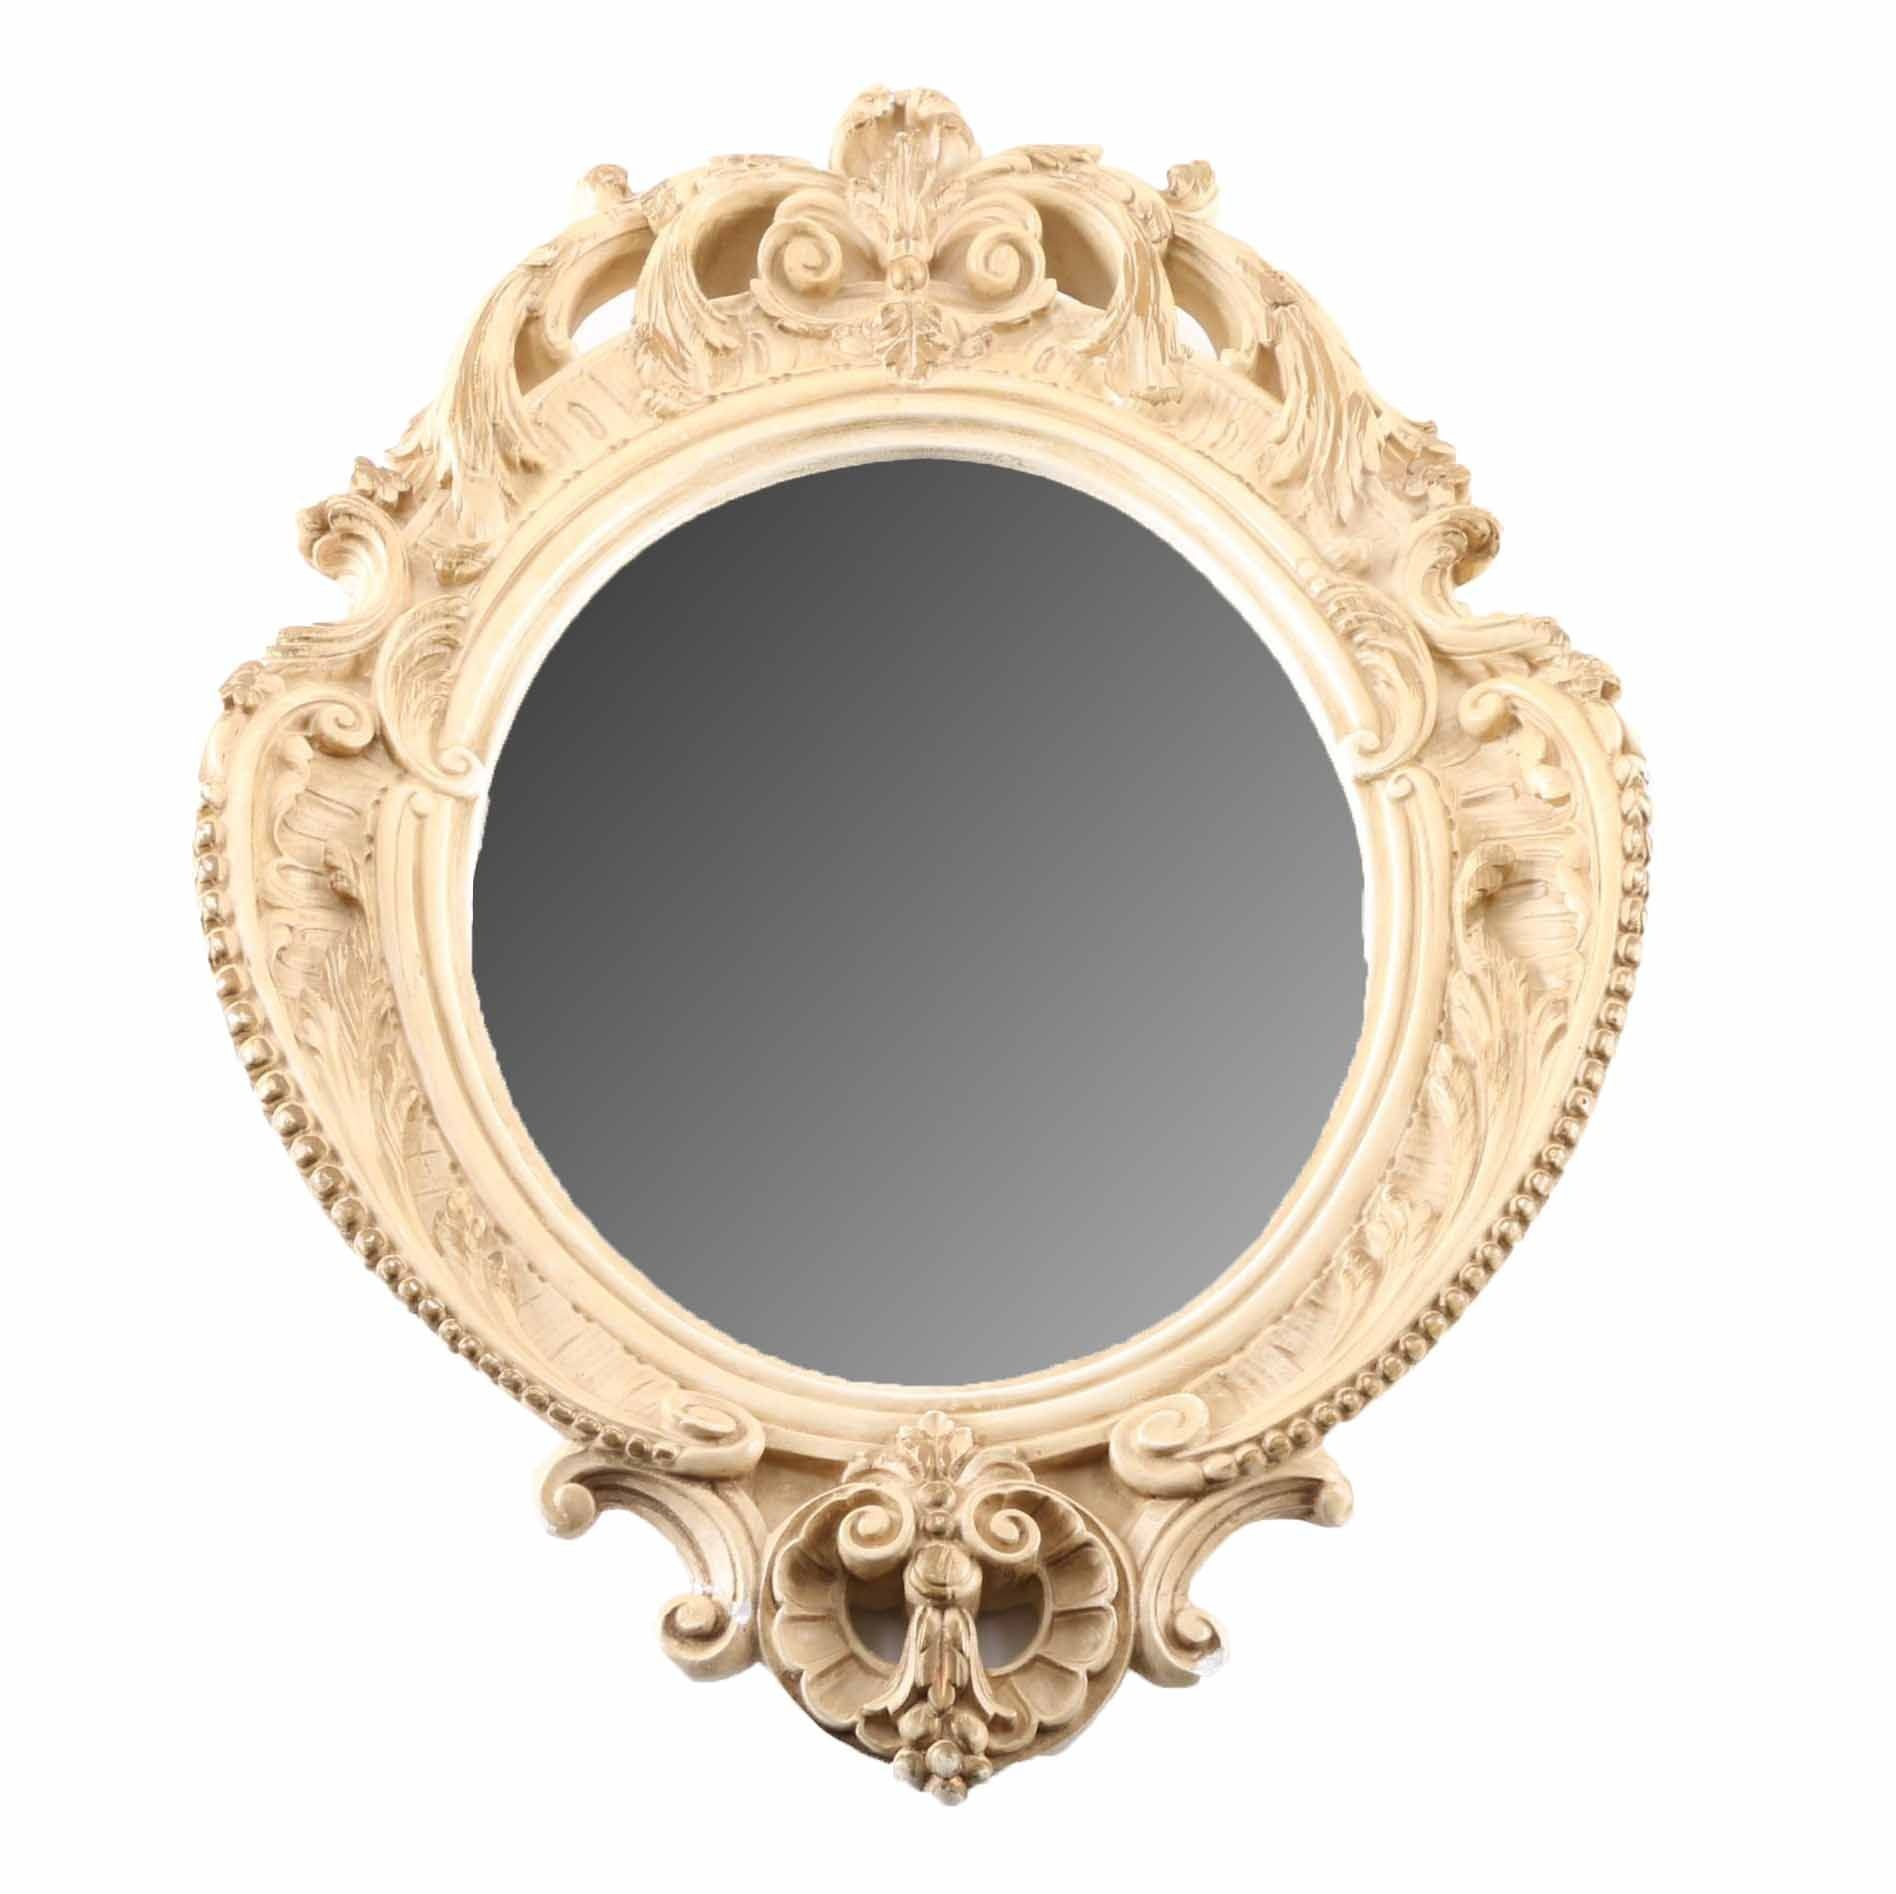 Rococo Inspired Wall Mirror by Universal Statuary Corp.